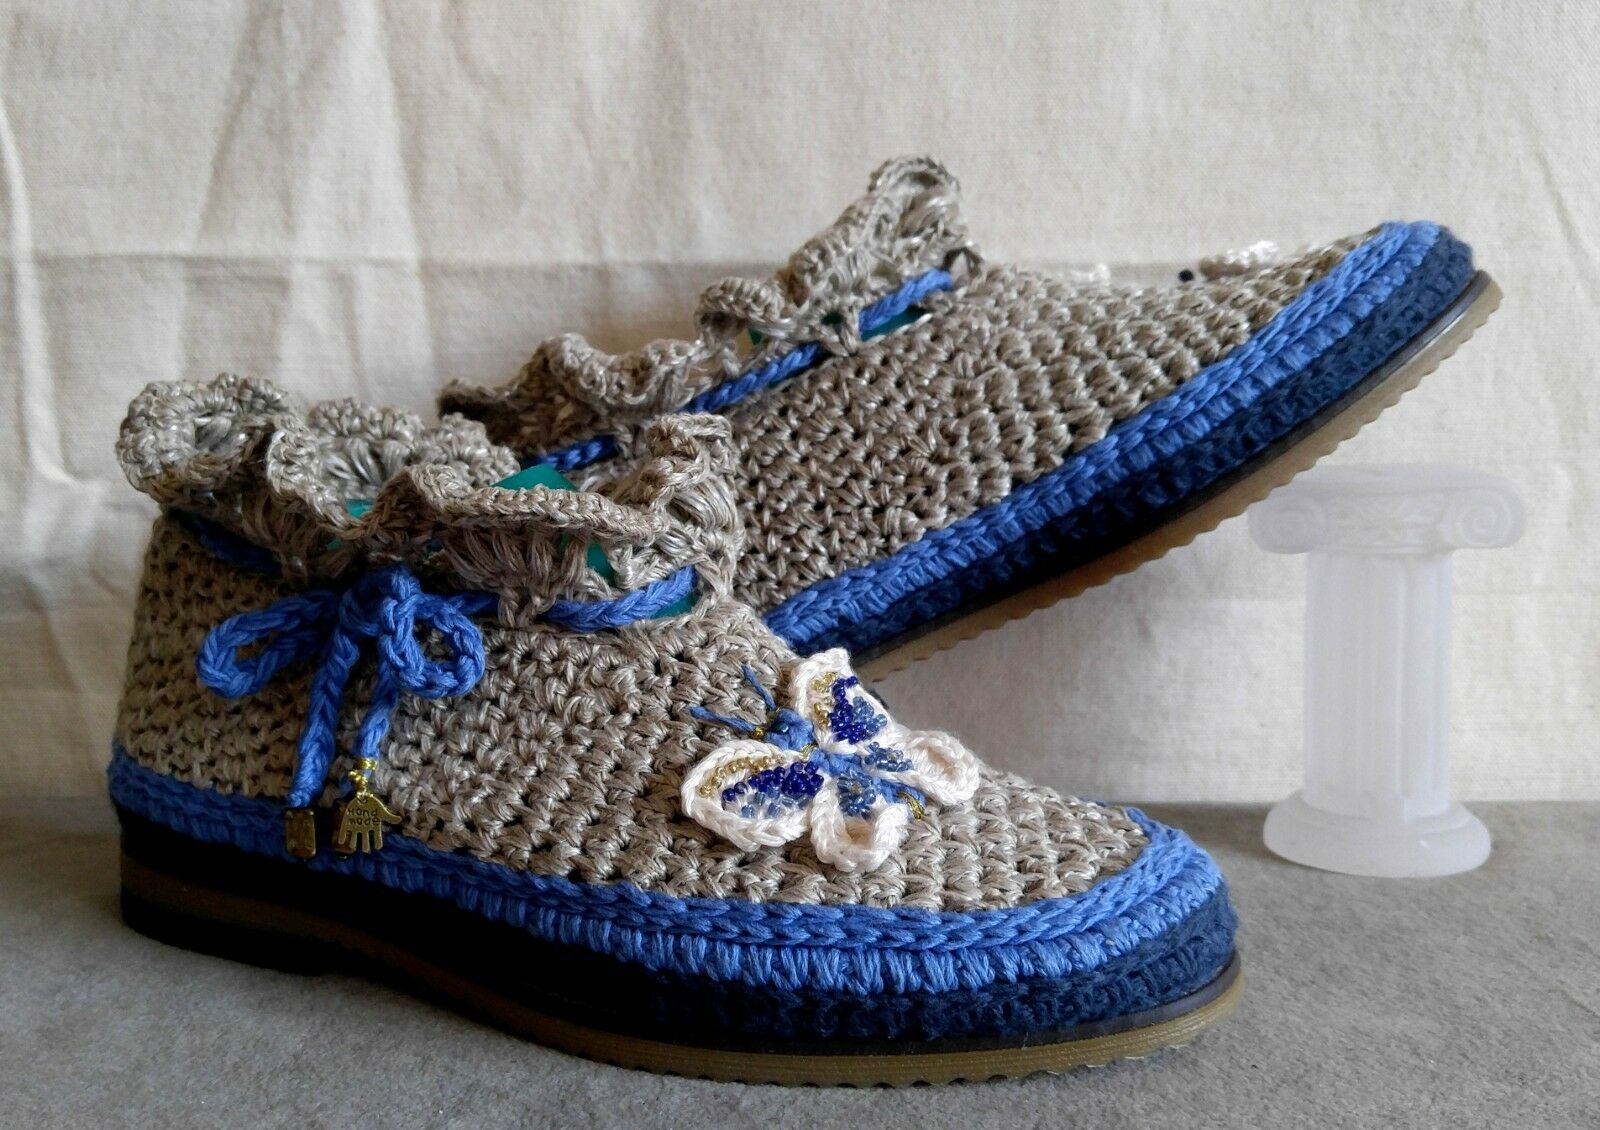 BOHO Eco Summer Ankle Boots shoes Flax Flax Flax Linen Hand Crochet Exclusive Lady Sz 6 a2e38f